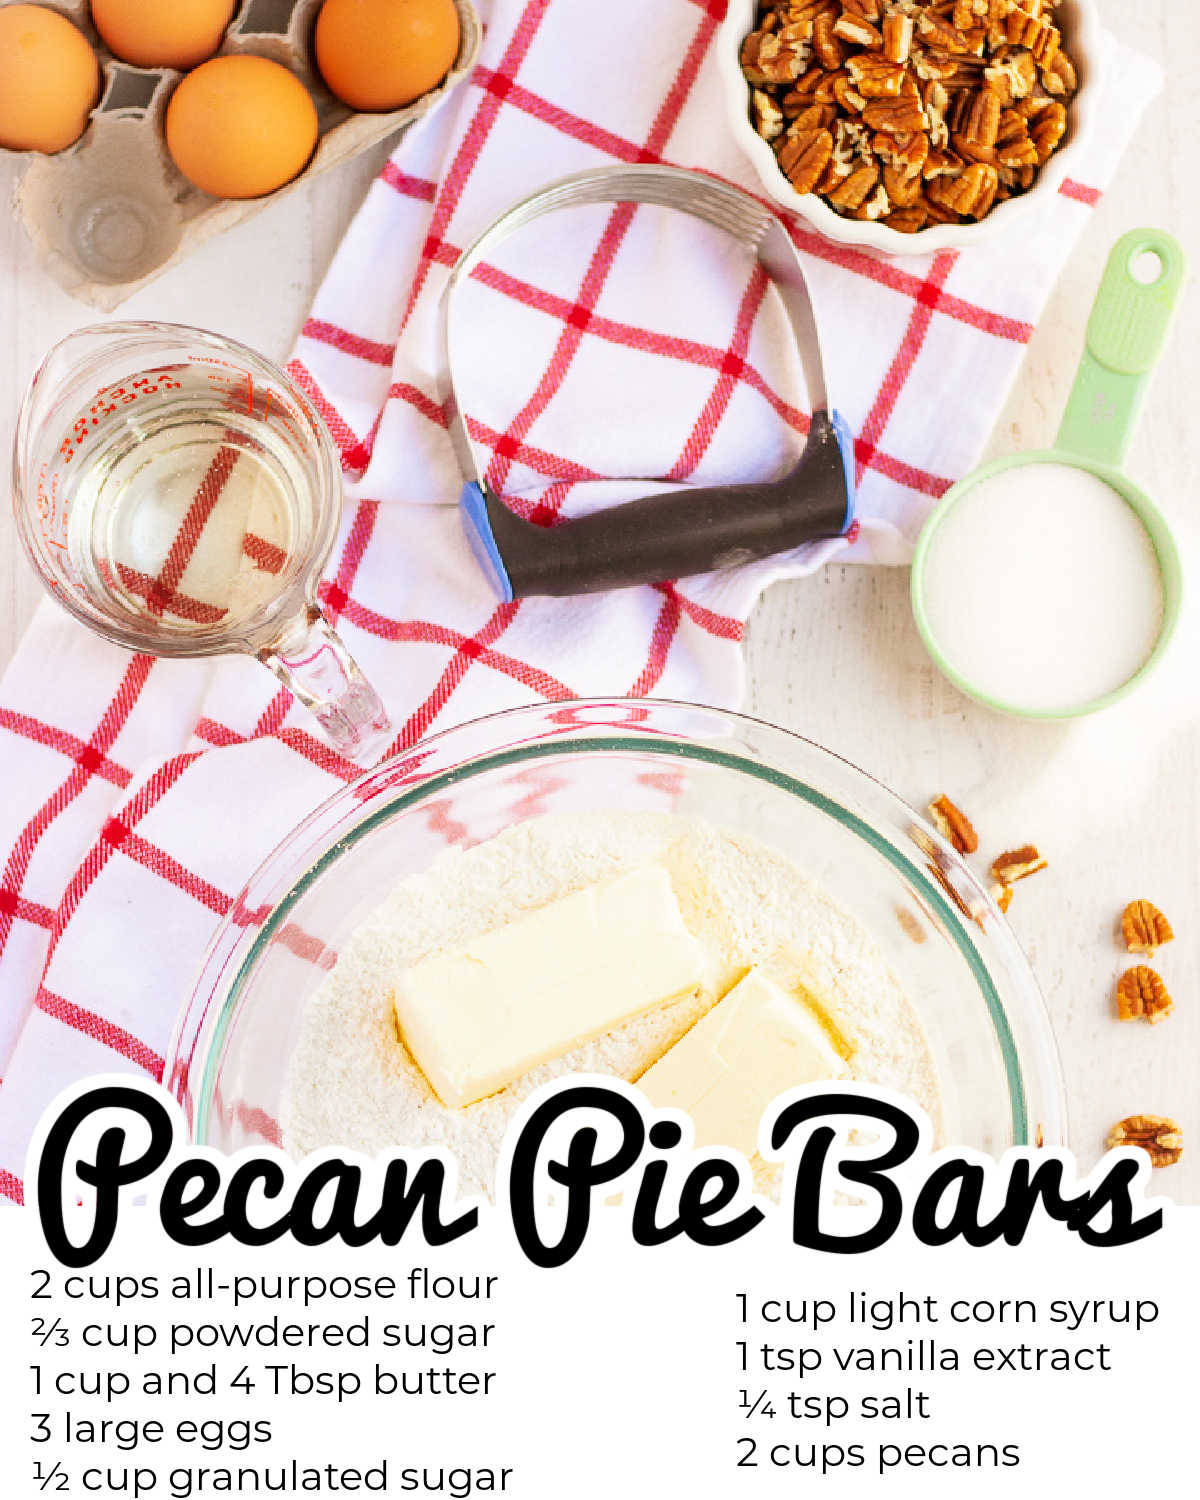 All of the ingredients needed to make this pecan pie bars recipe.